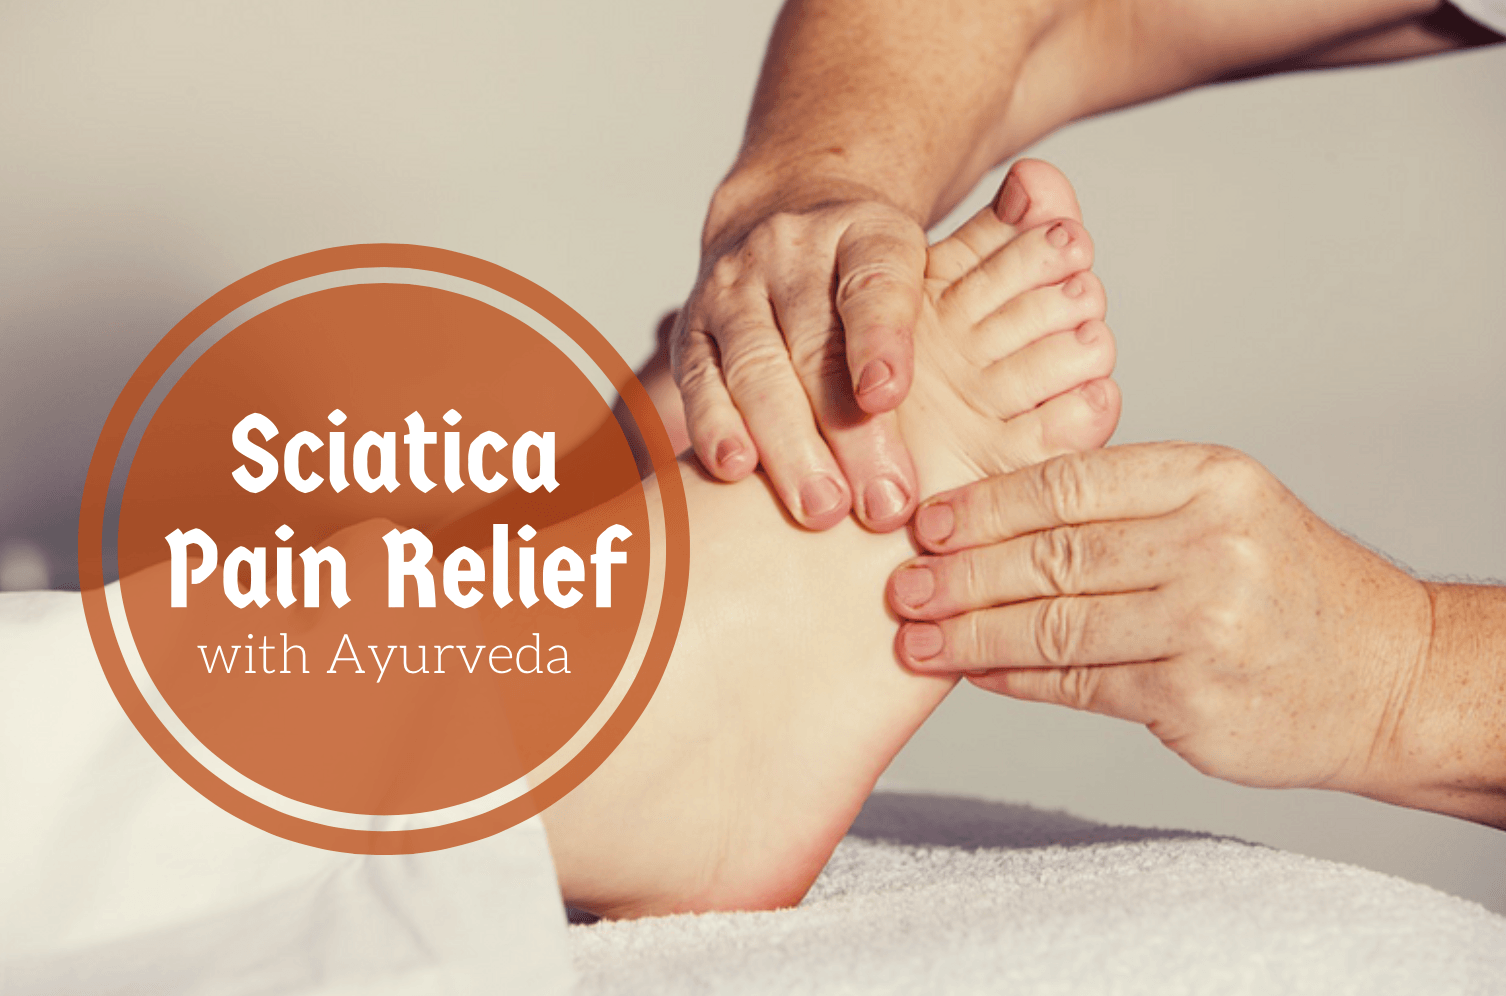 Five Important Indian Medicinal Crops for Treating Different Conditions with Specific Reference to Sciatica